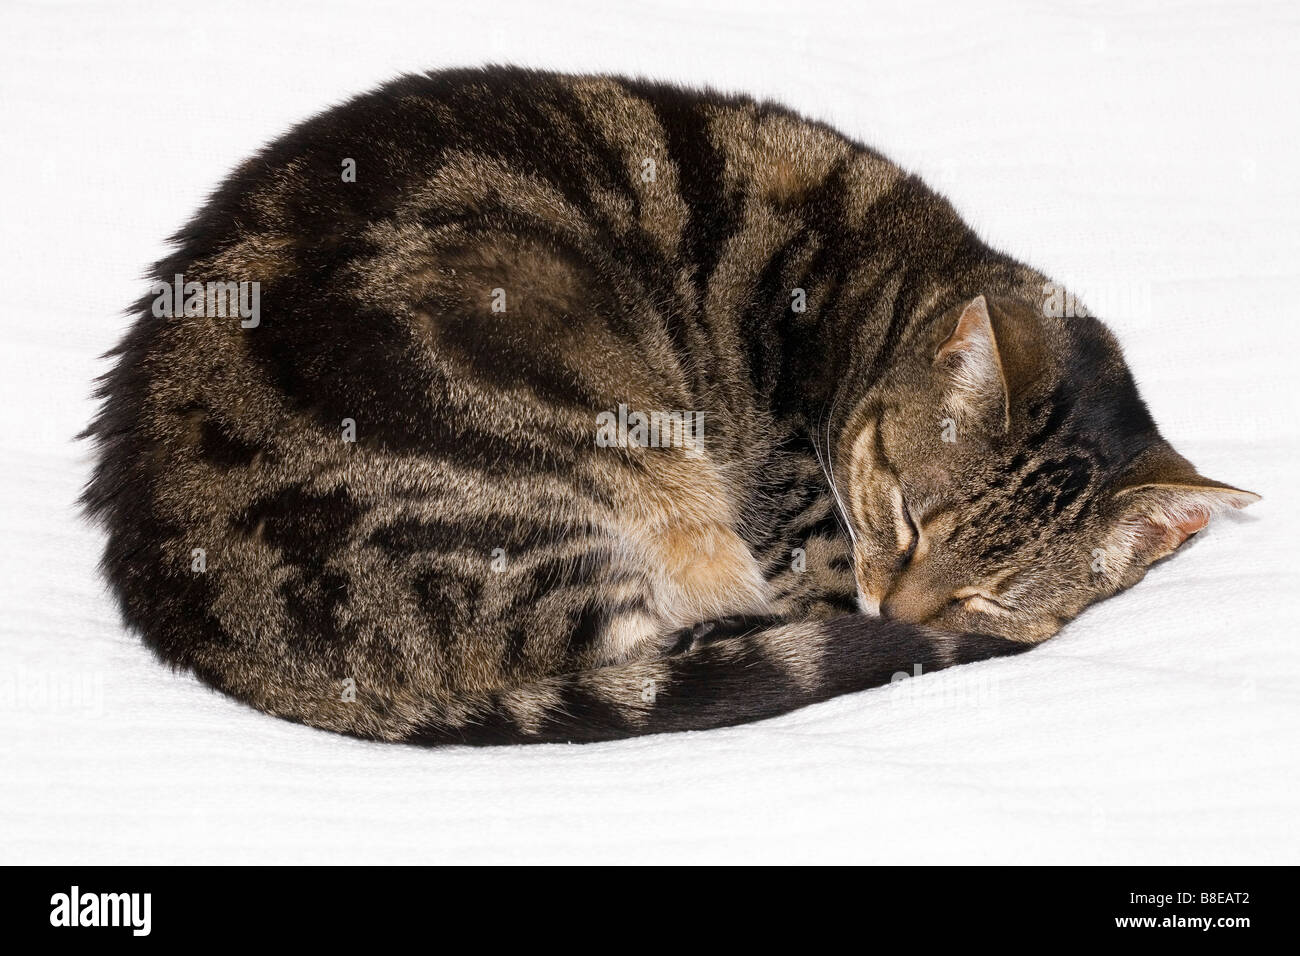 Tabby Cat Sleeping Curled Up Stock Photo Royalty Free